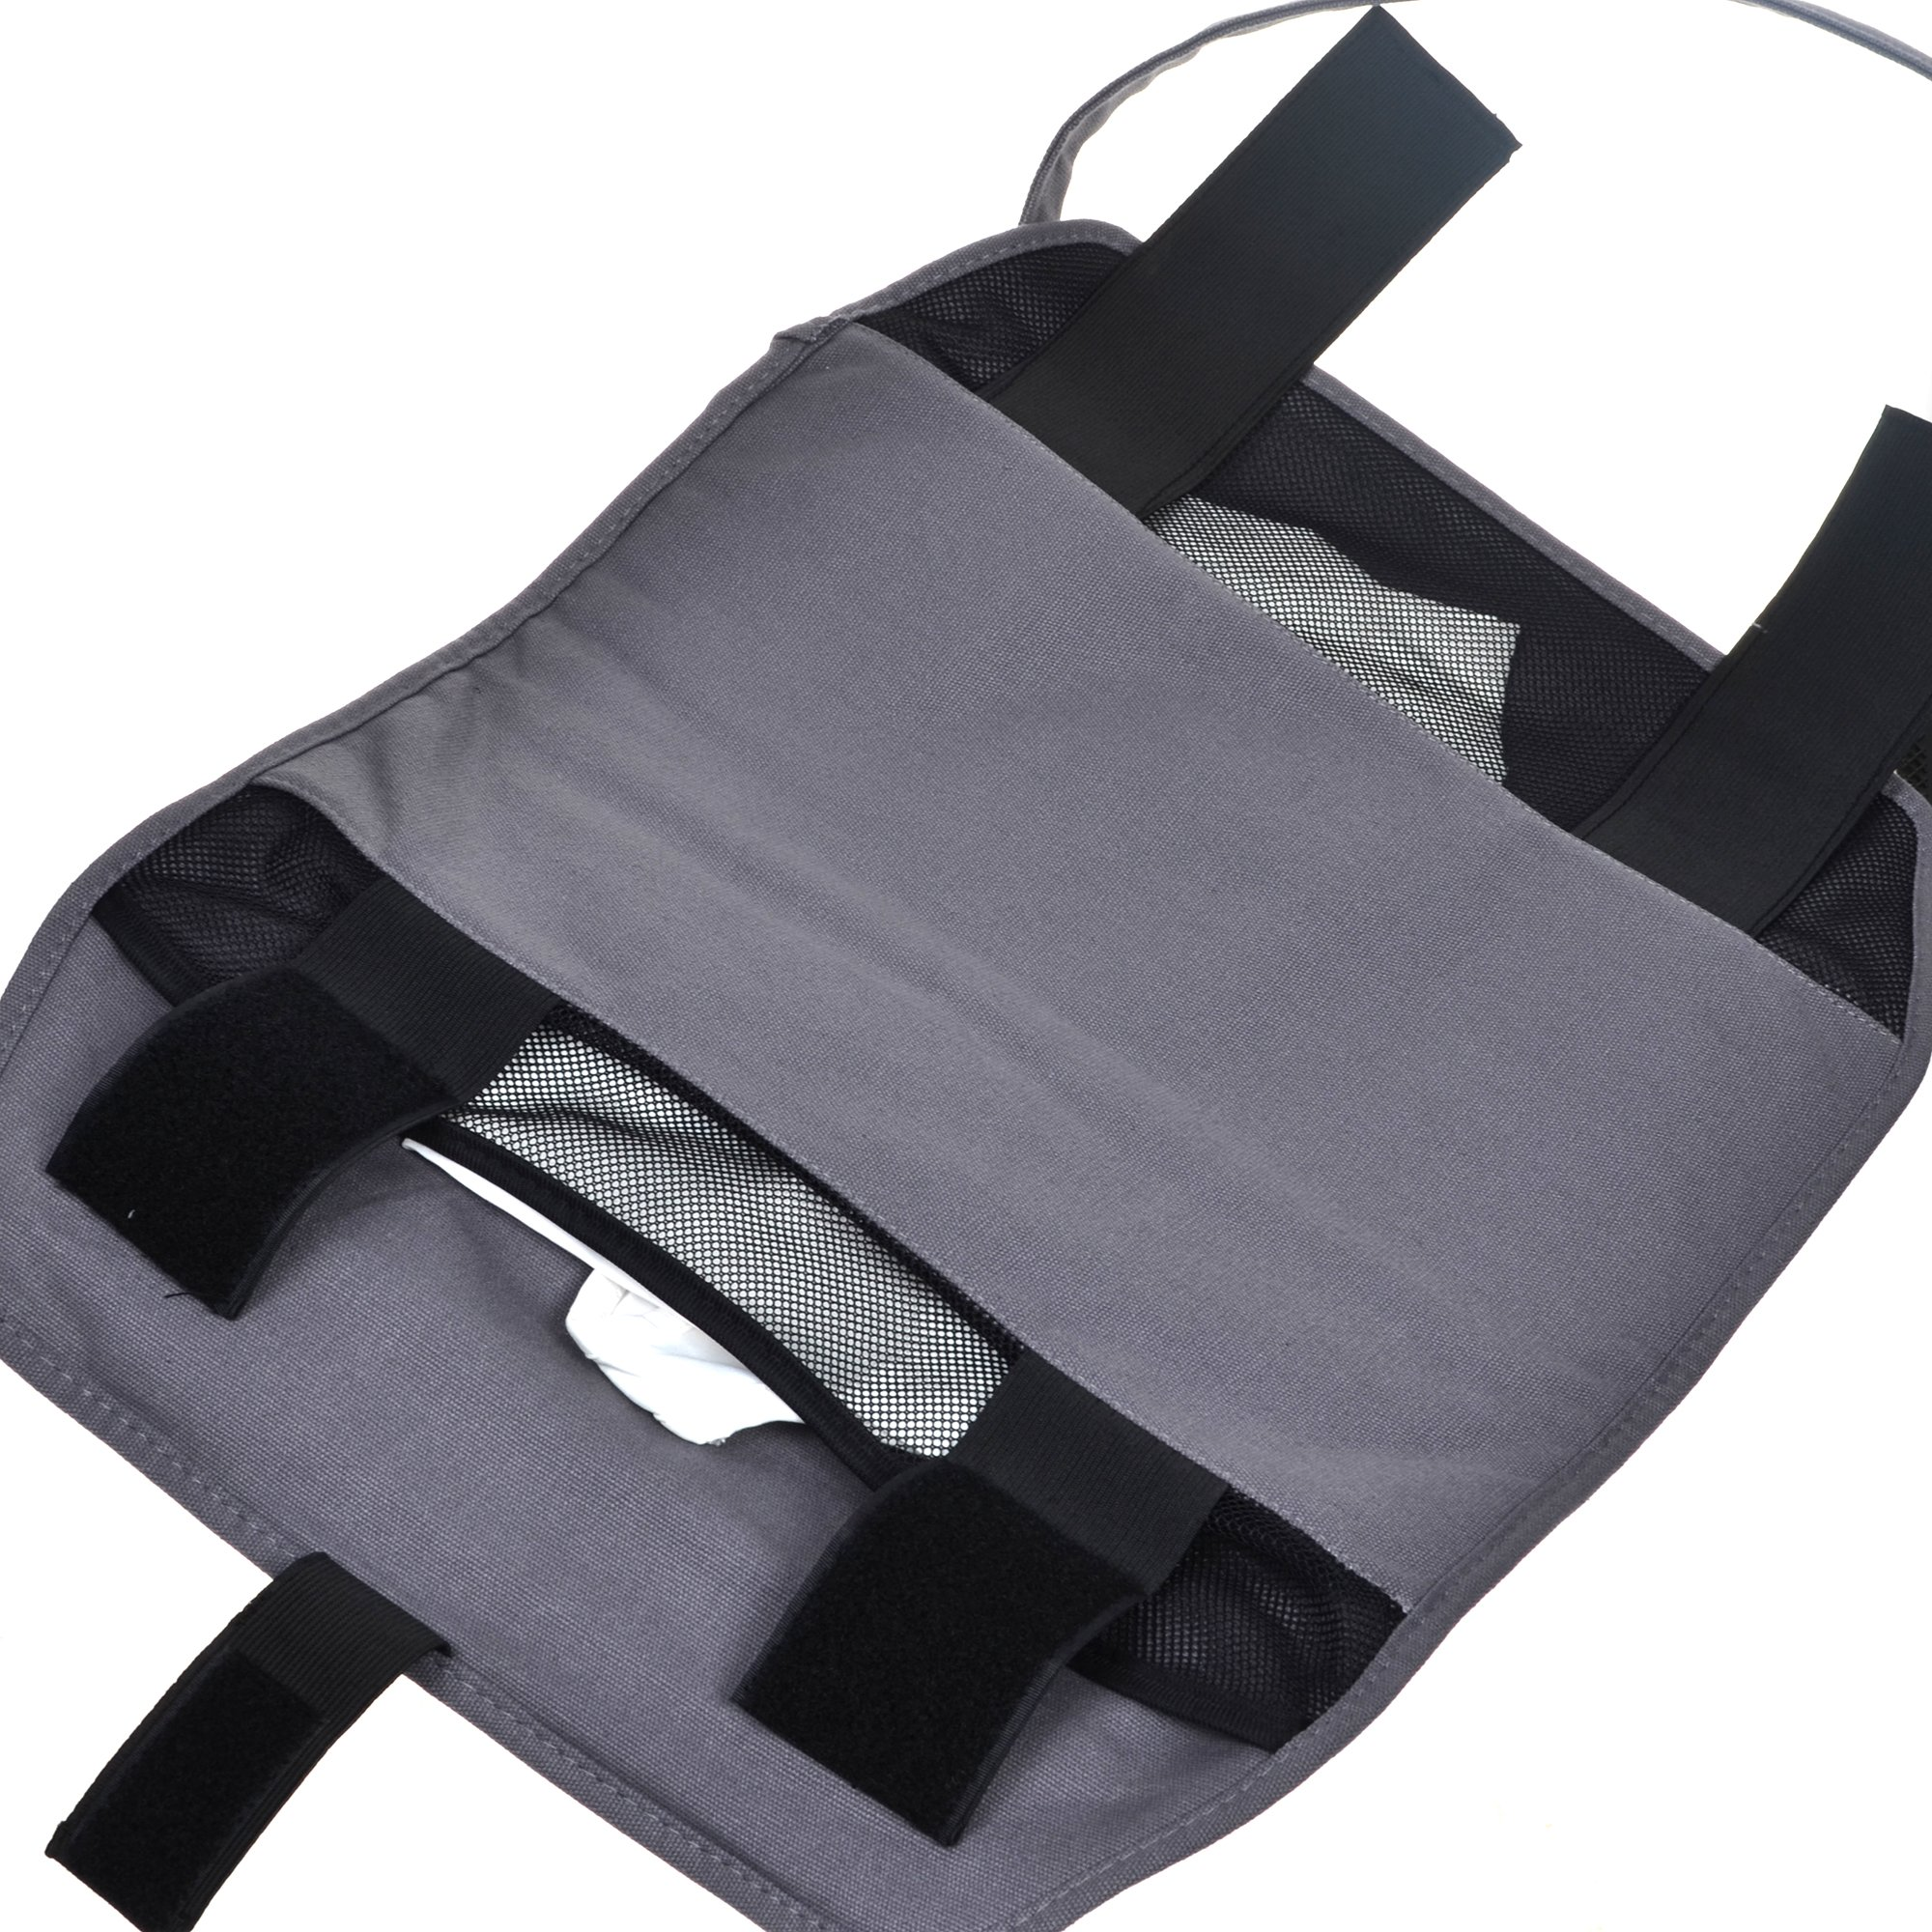 Cosmos Exercise Yoga Mat Carrying Shoulder Strap Bag with Internal and Outside Storge Pocket (Yoga Mat is NOT Included) by Cosmos (Image #5)